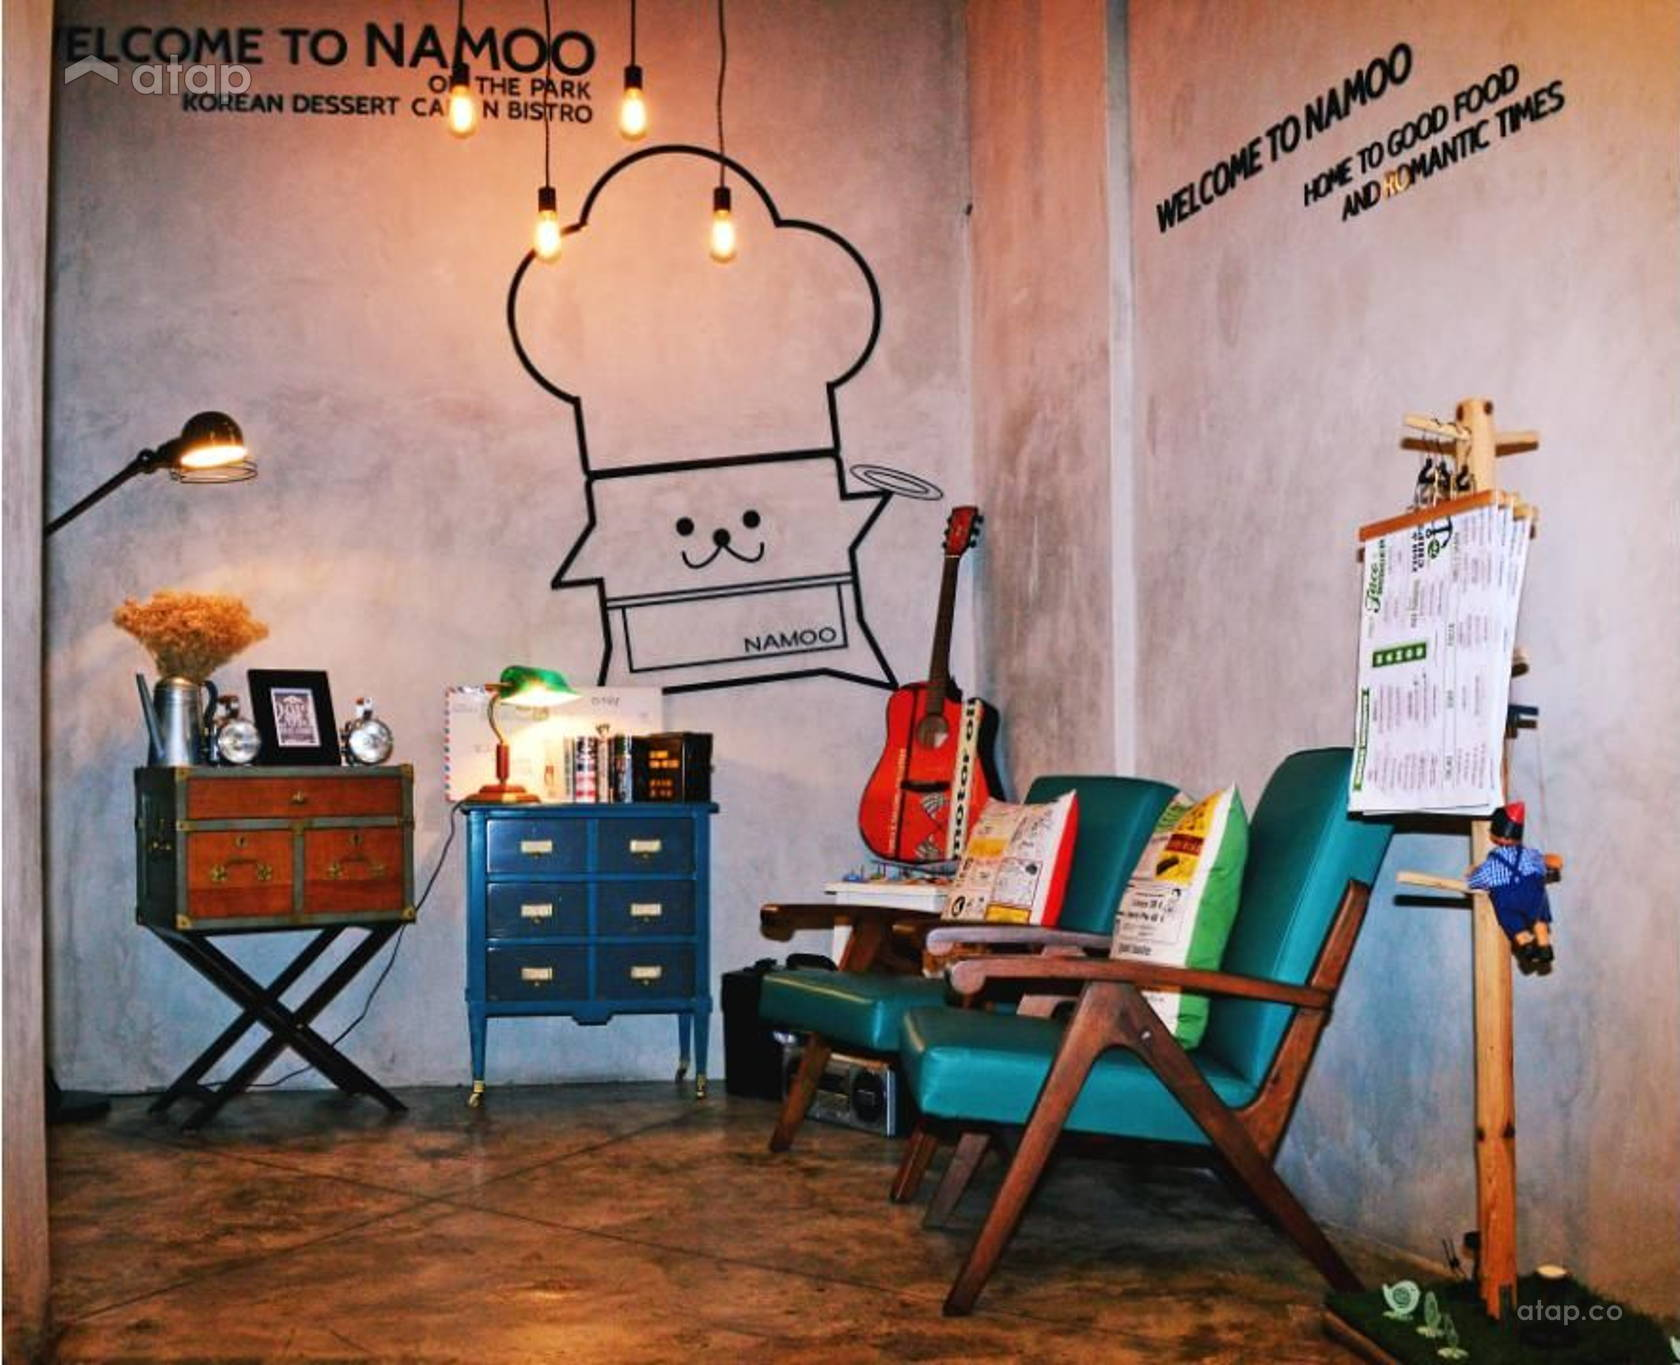 Namoo Korean Dessert Cafe N Bistro On The Park Interior Design Renovation Ideas Photos And Price In Malaysia Atap Co